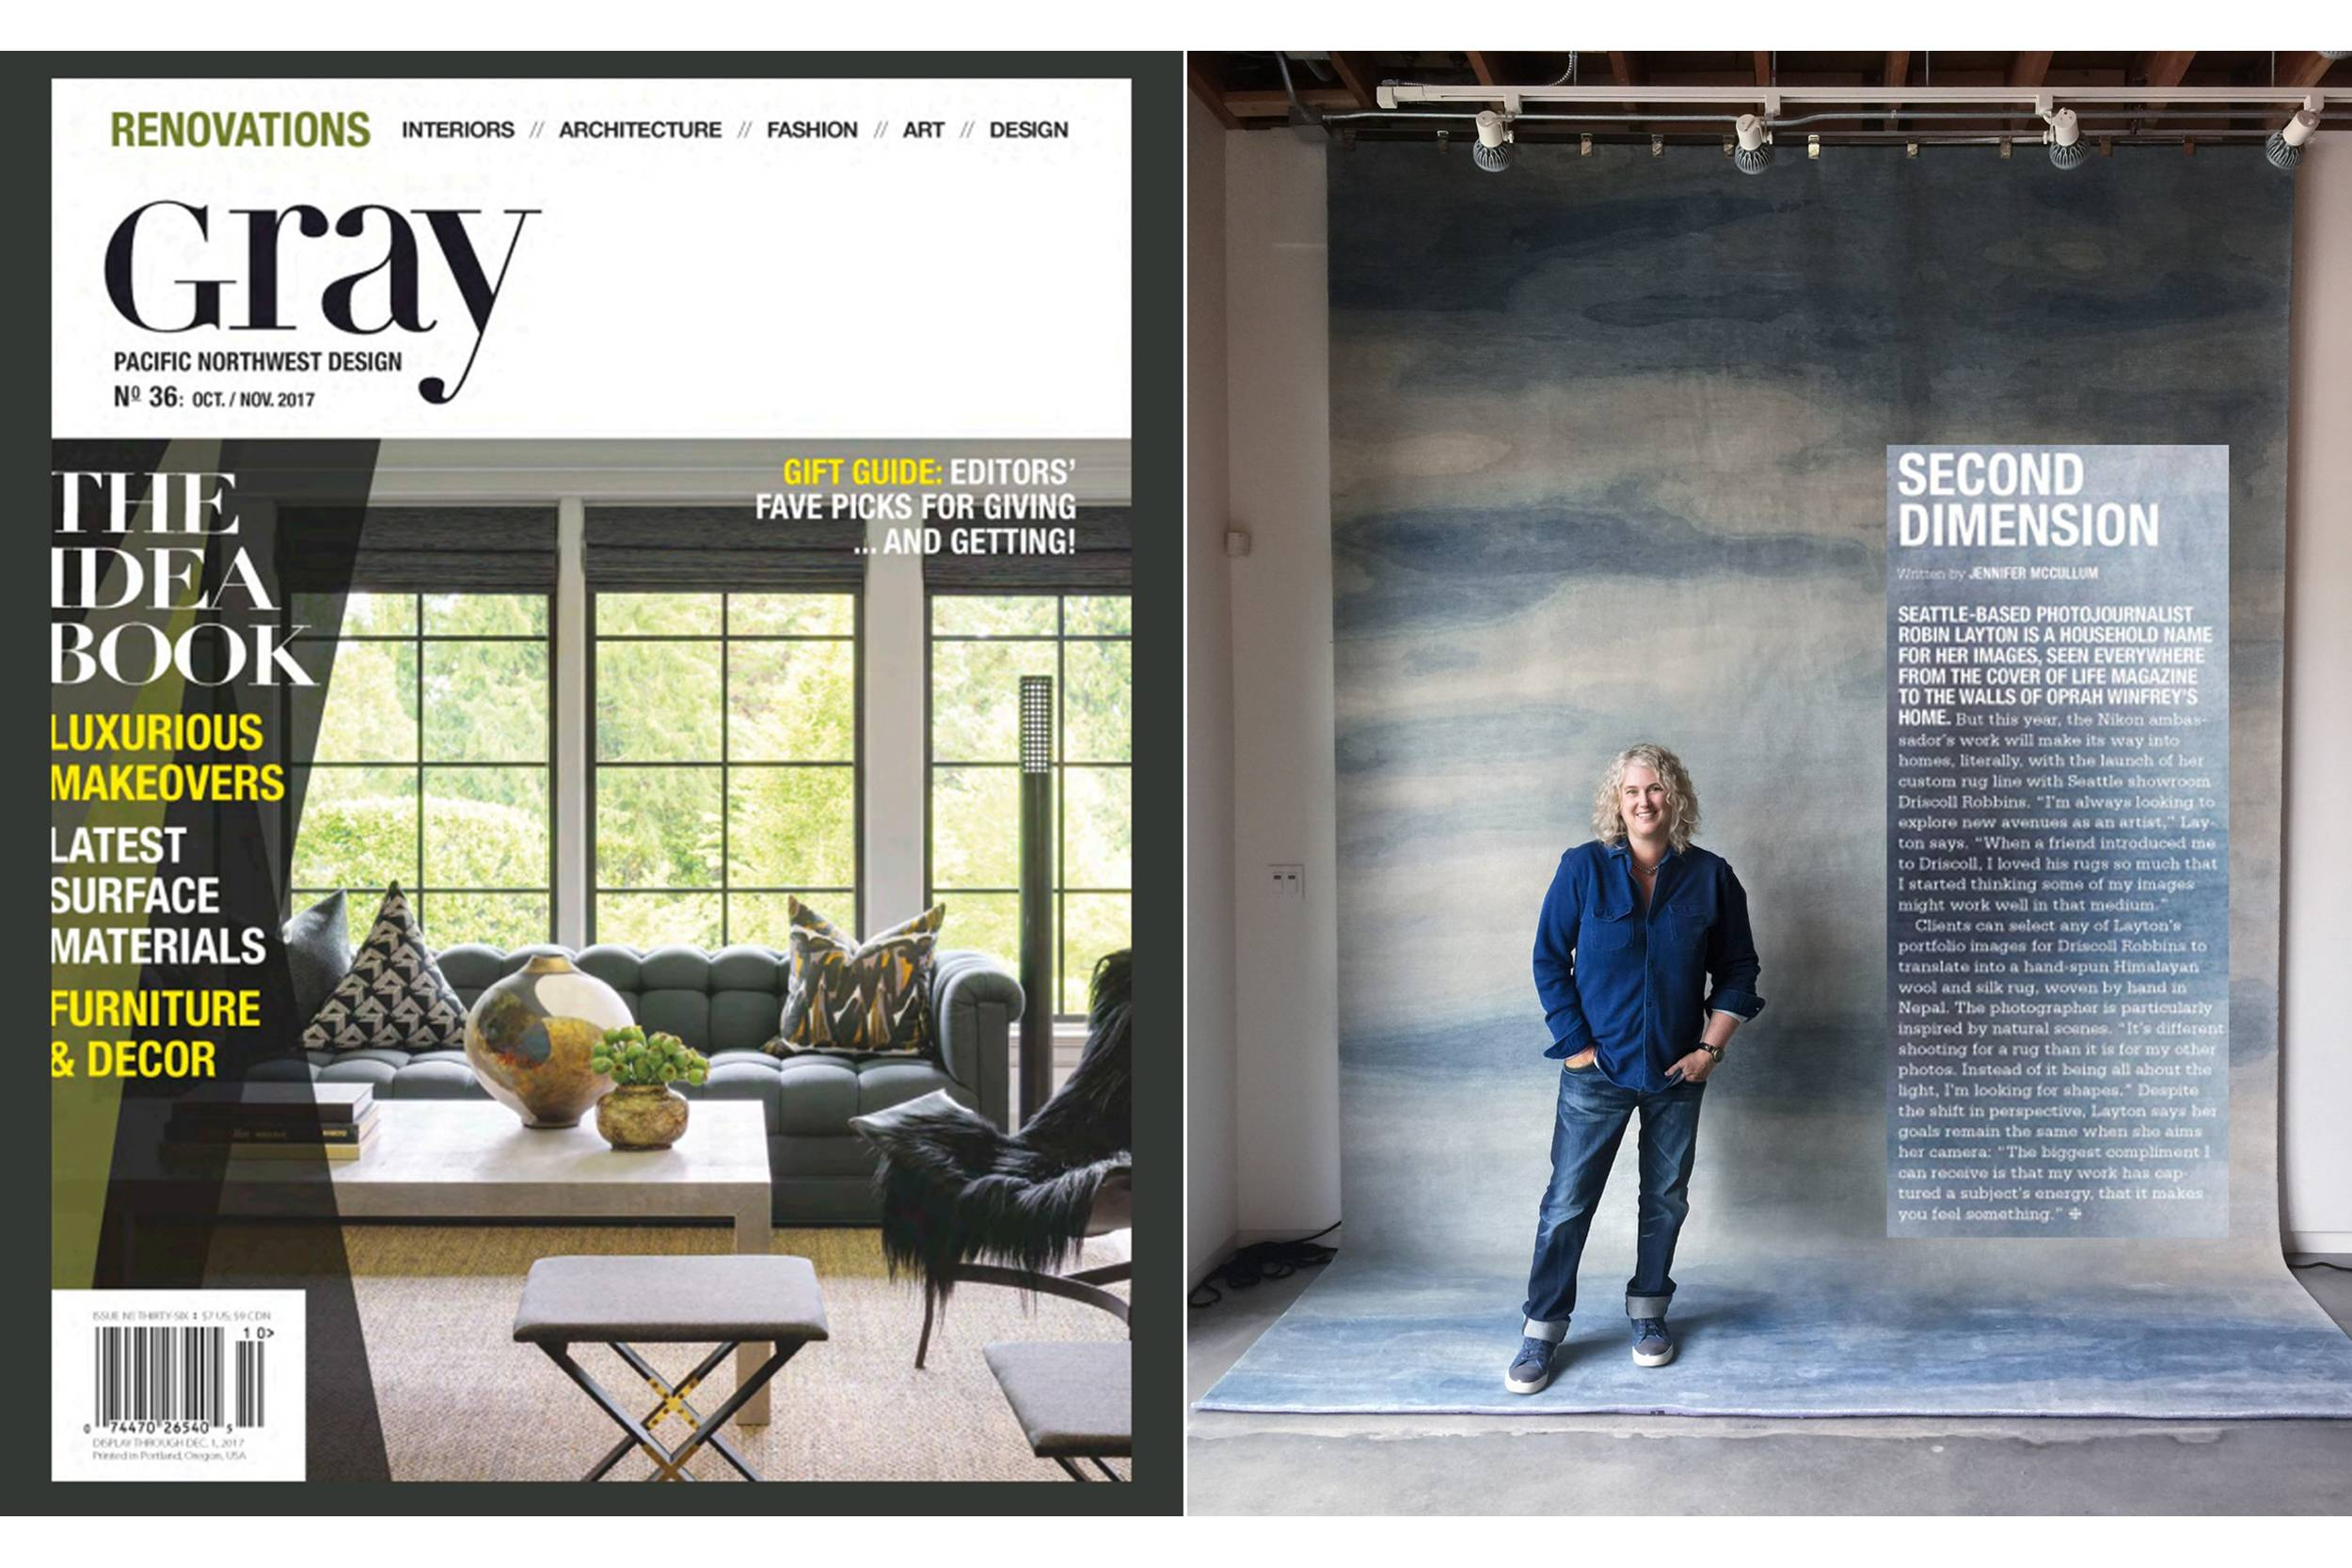 Gray magazine for website_Robin and Rug.jpg